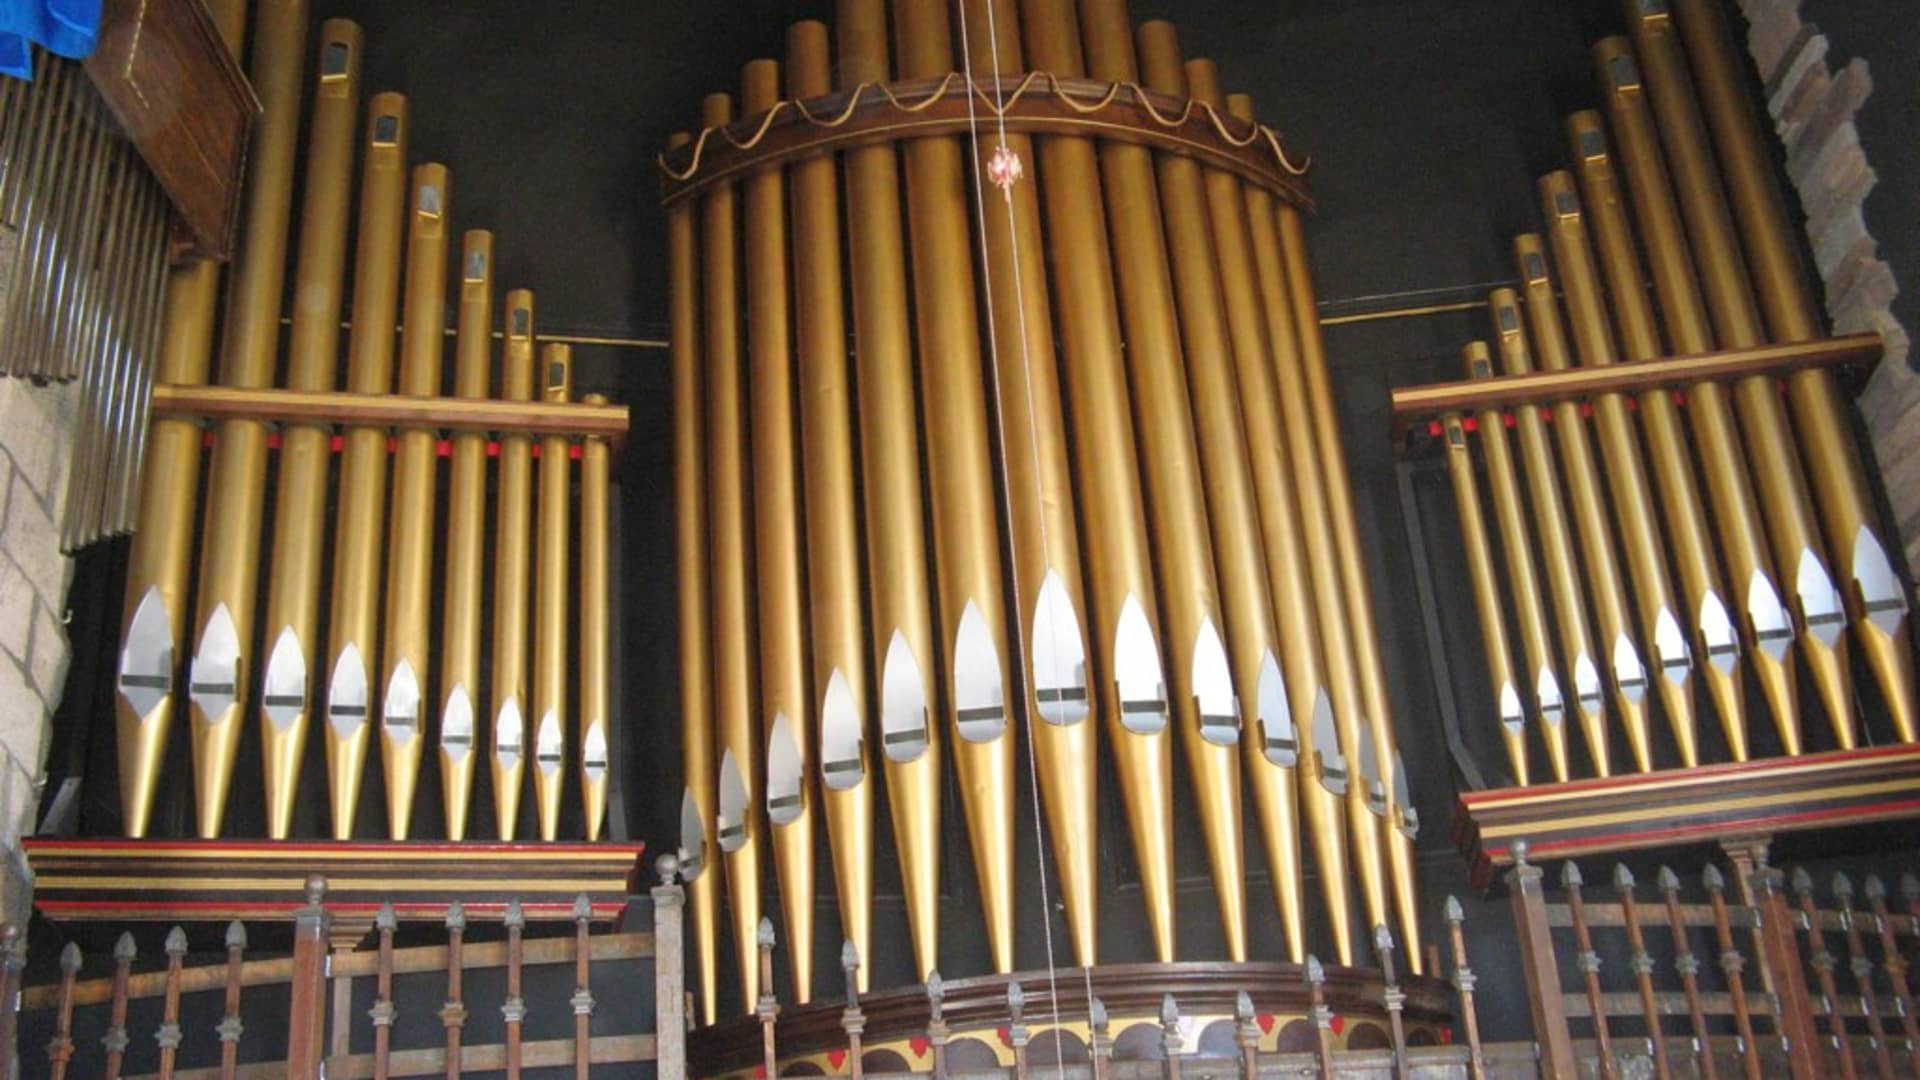 The Hard Luck Mine Castle pipe organs.